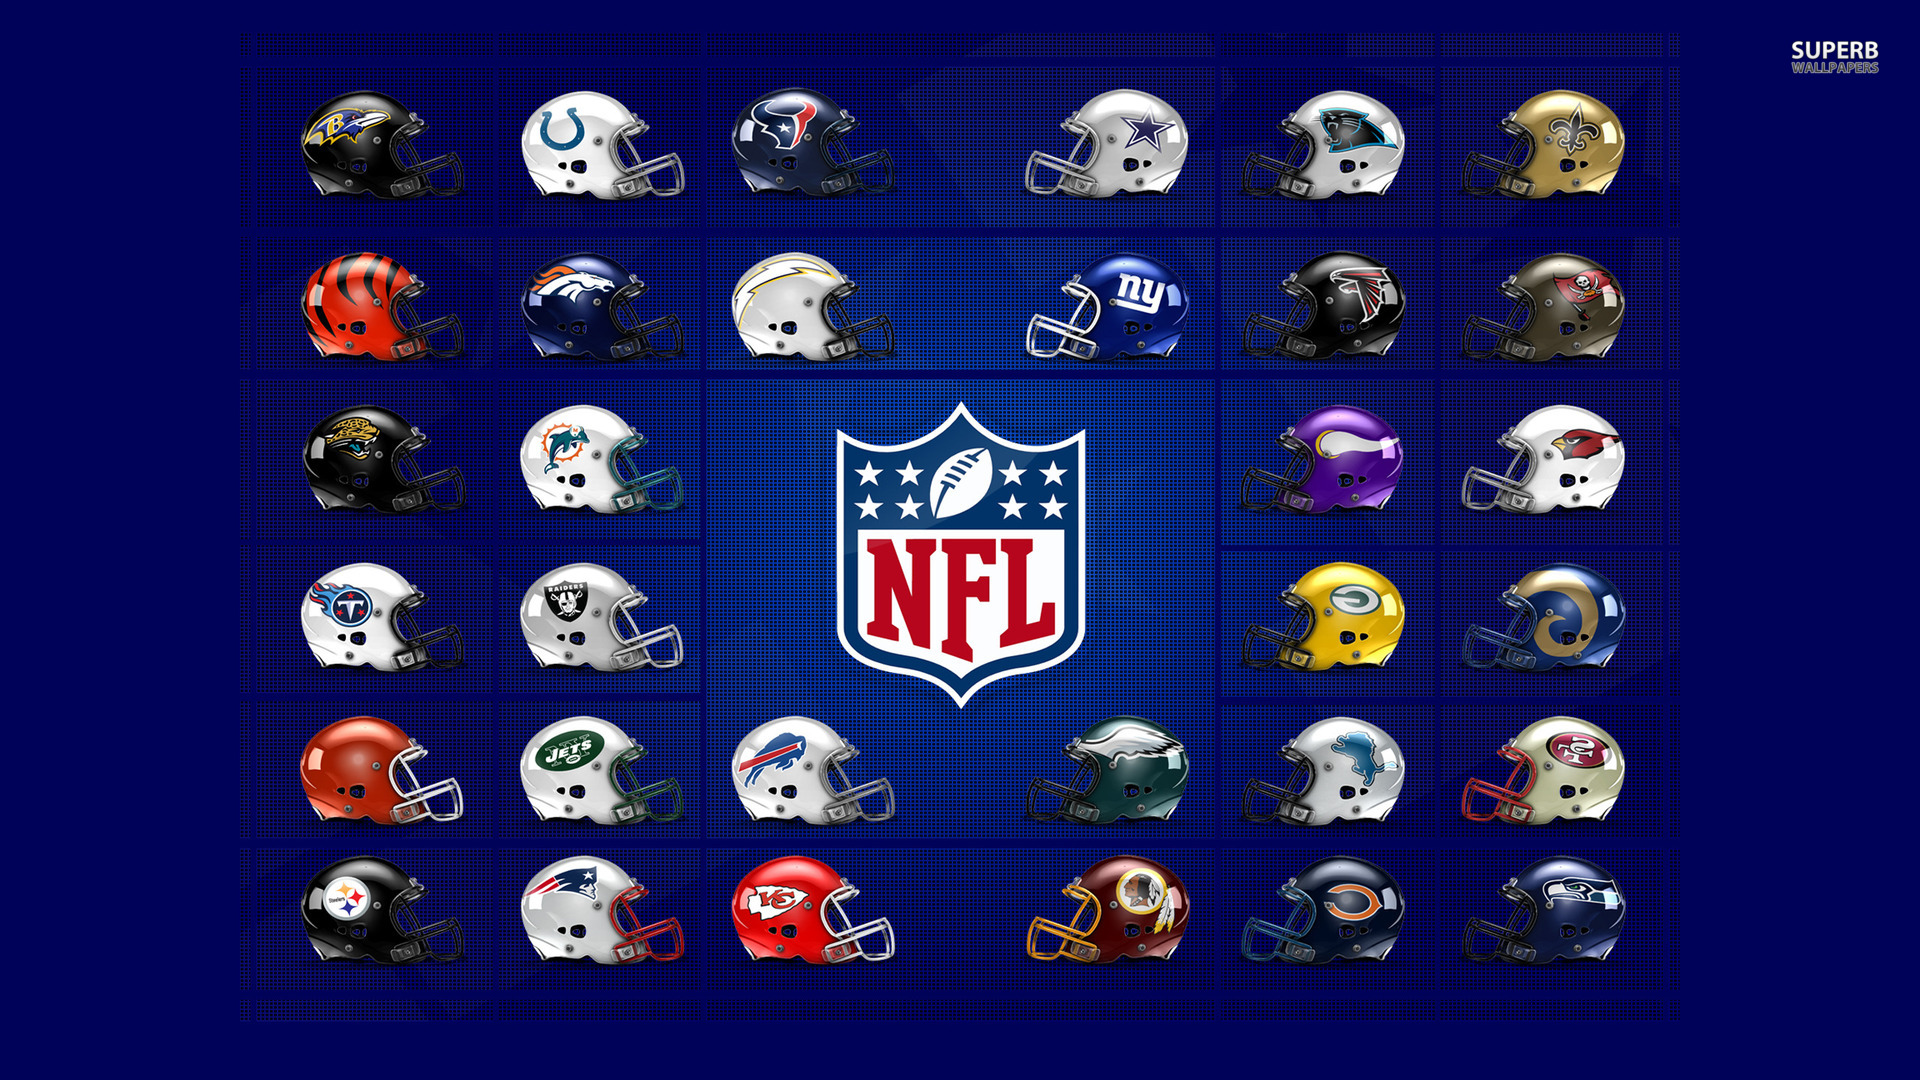 Free Download Nfl Football Hd Wallpapers For: Cool Nfl Football Wallpapers